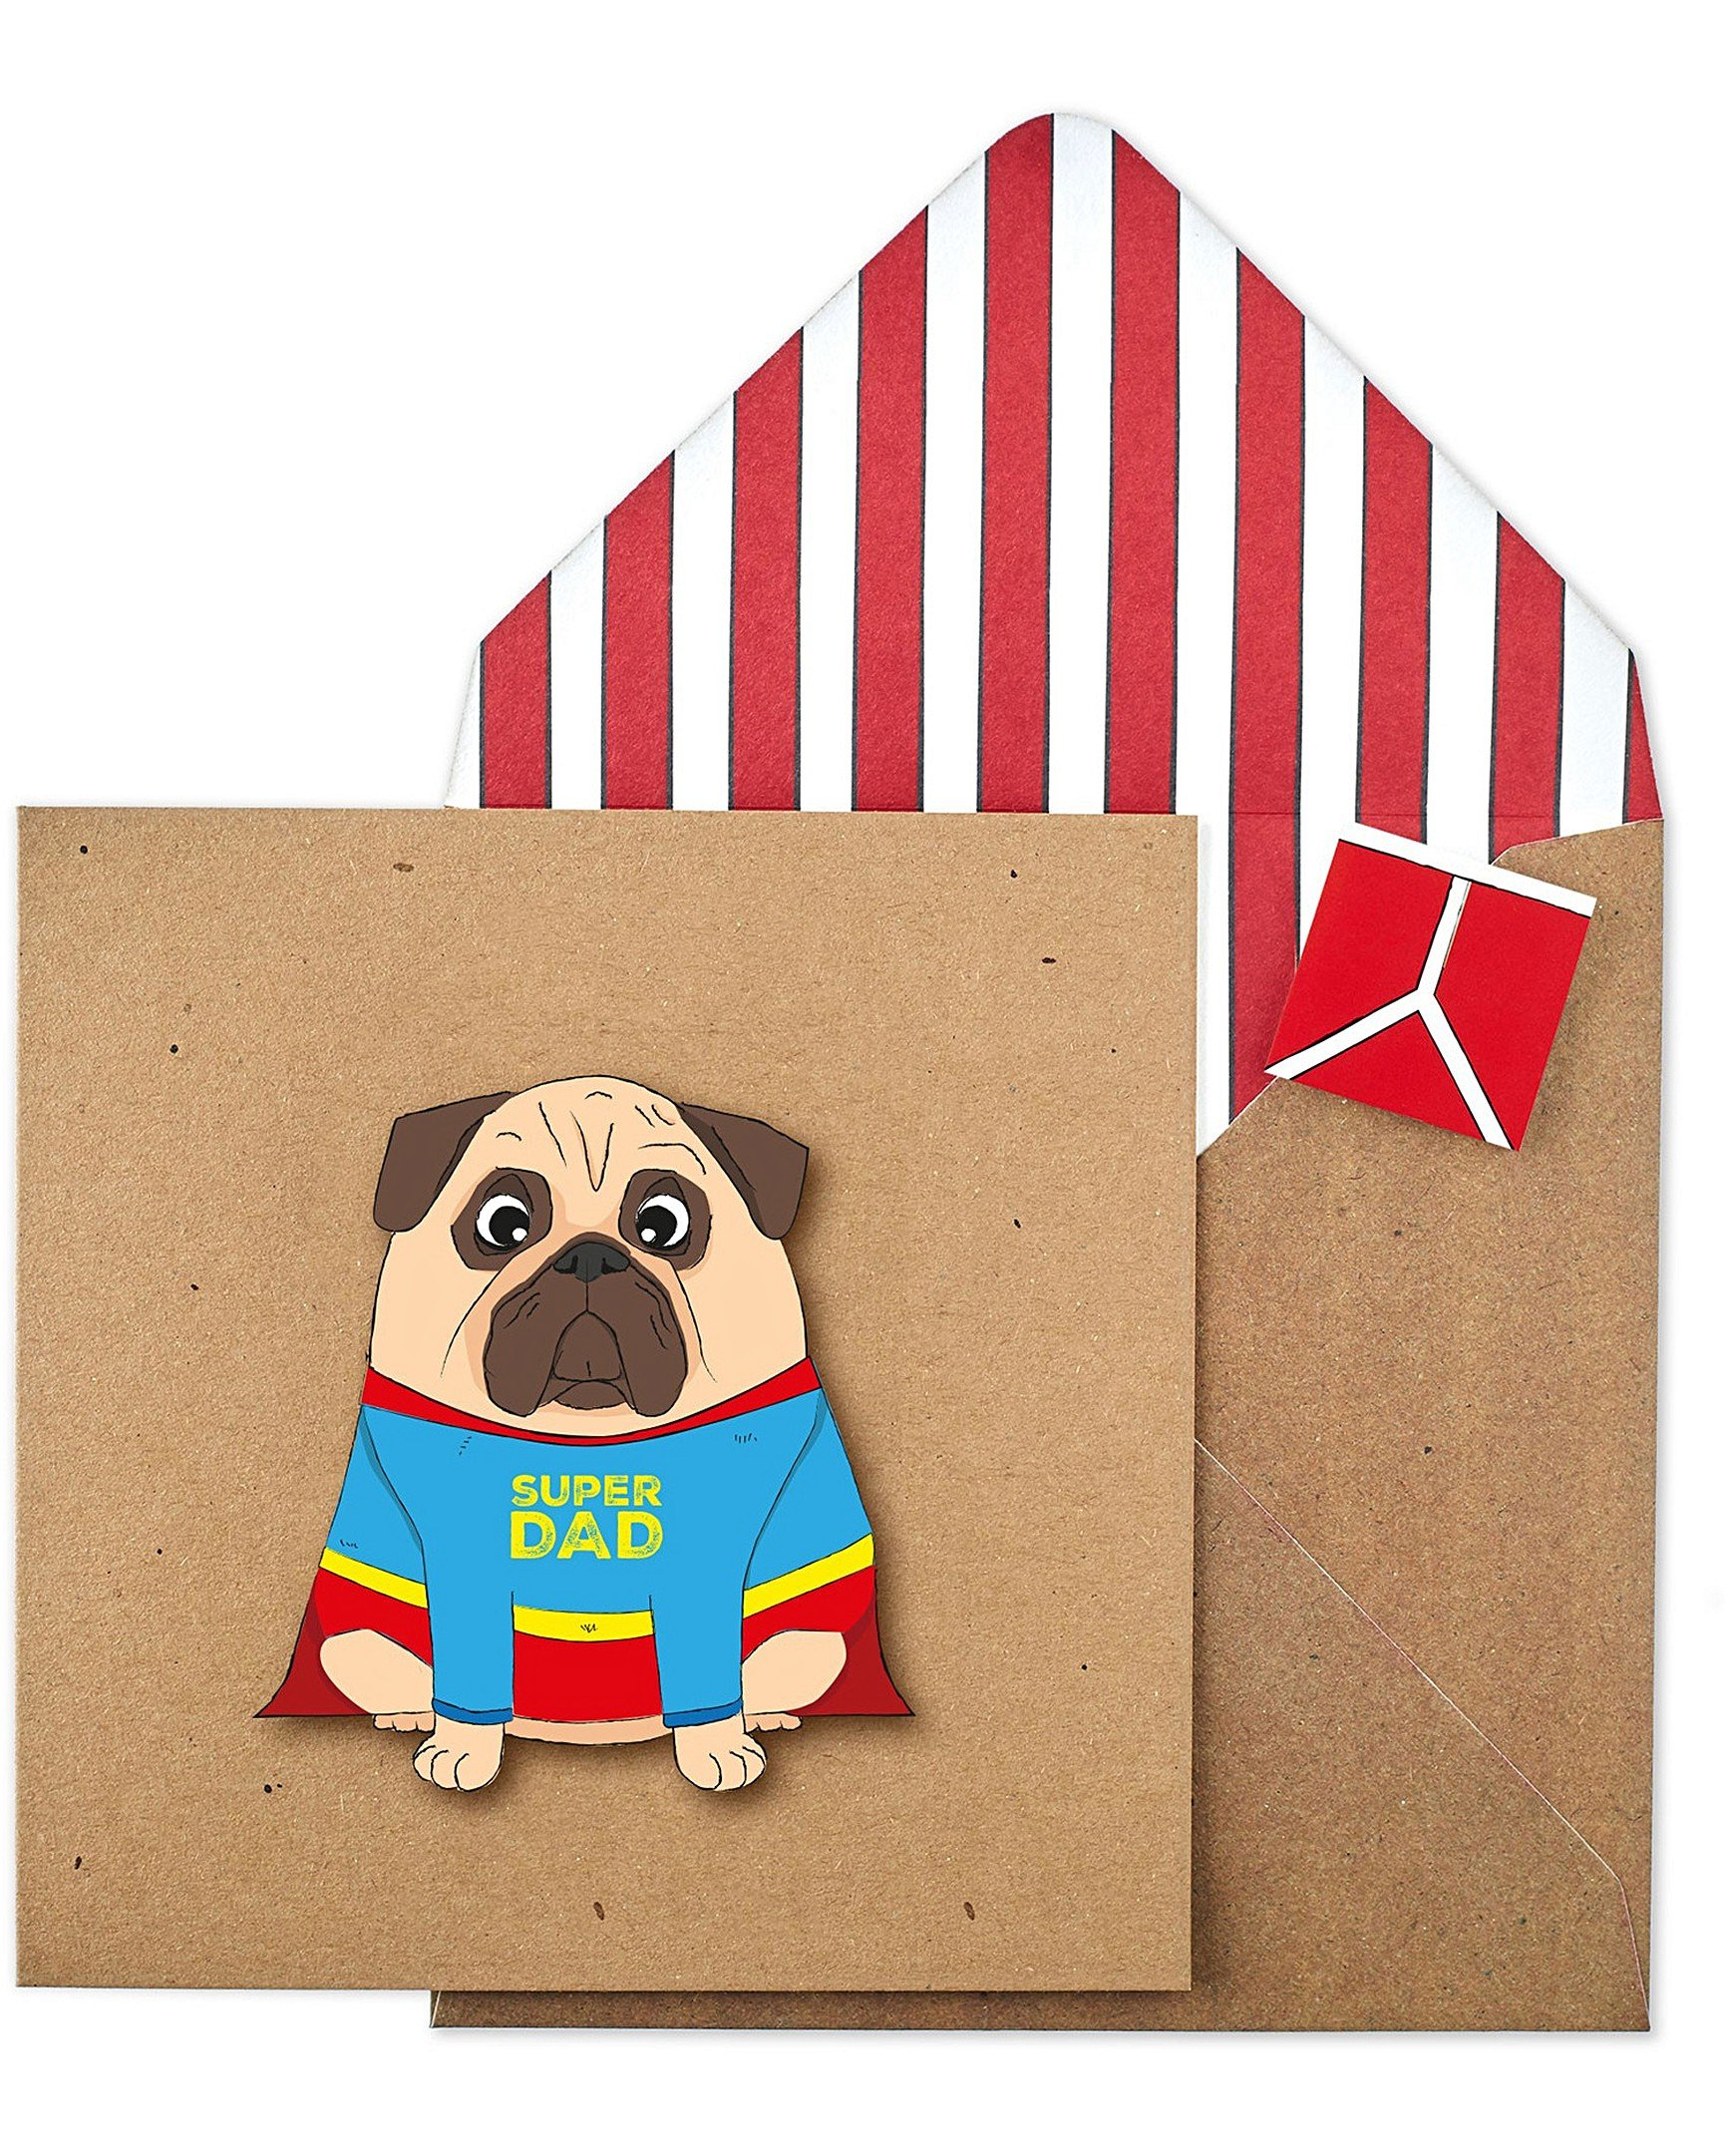 d089015a5f24c Super Dad Pug Father s Day Card